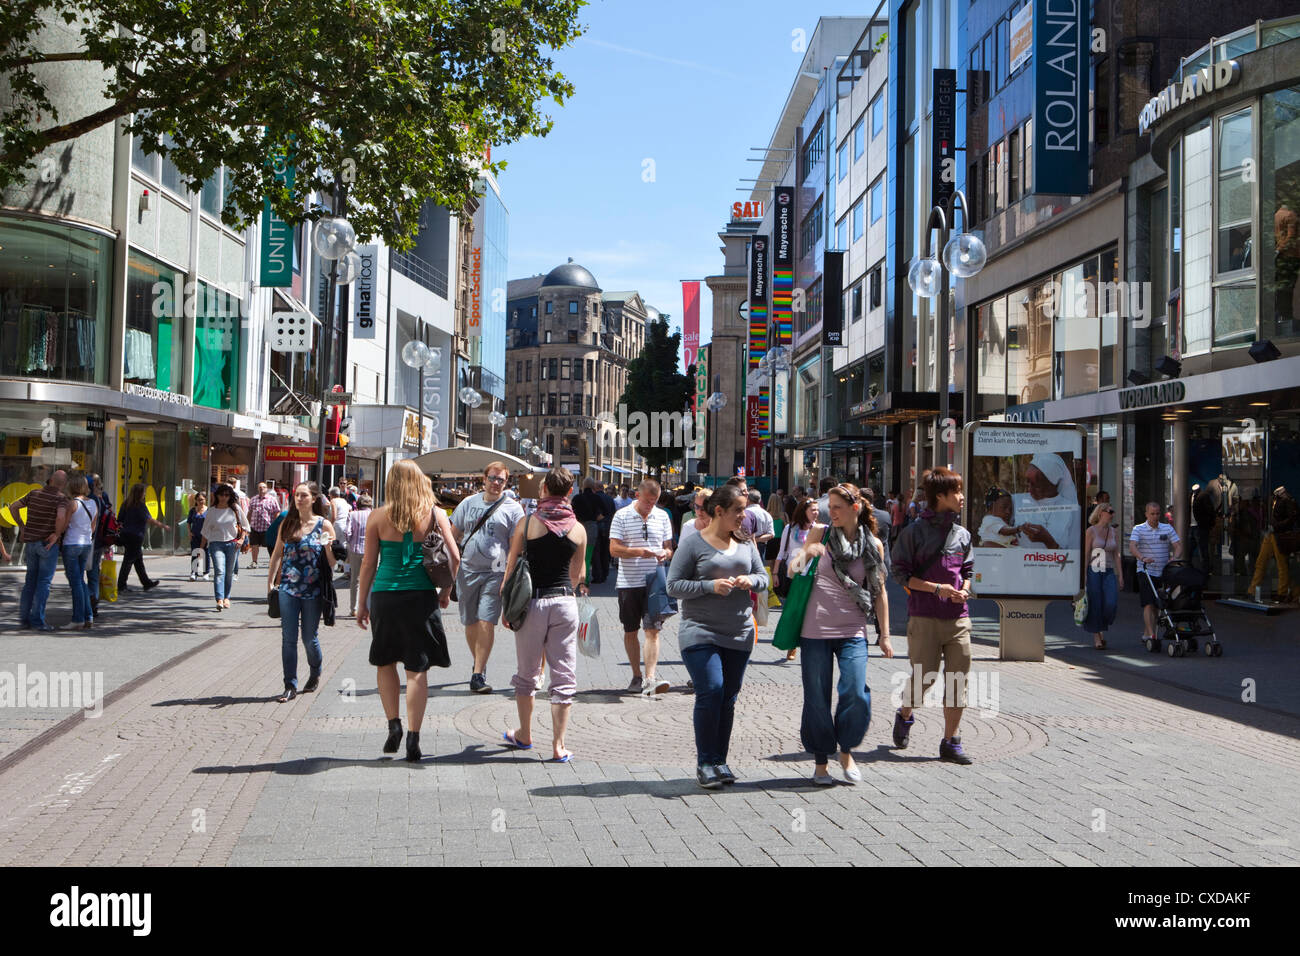 Pedestrians in the city centre of Cologne, Schildergasse, North Rhine-Westphalia, Germany, - Stock Image